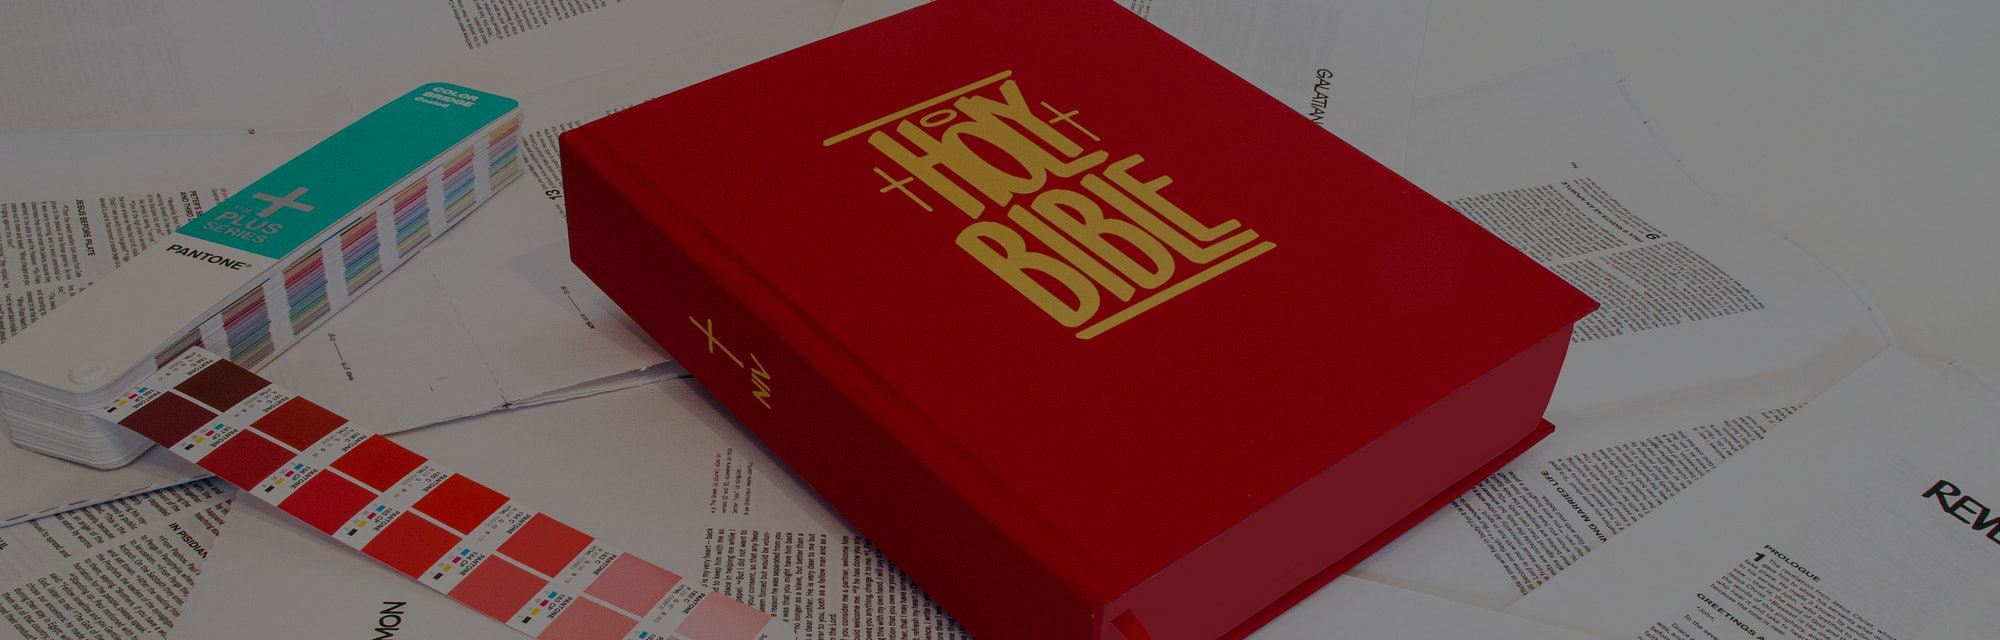 Jon Buscemi Bible